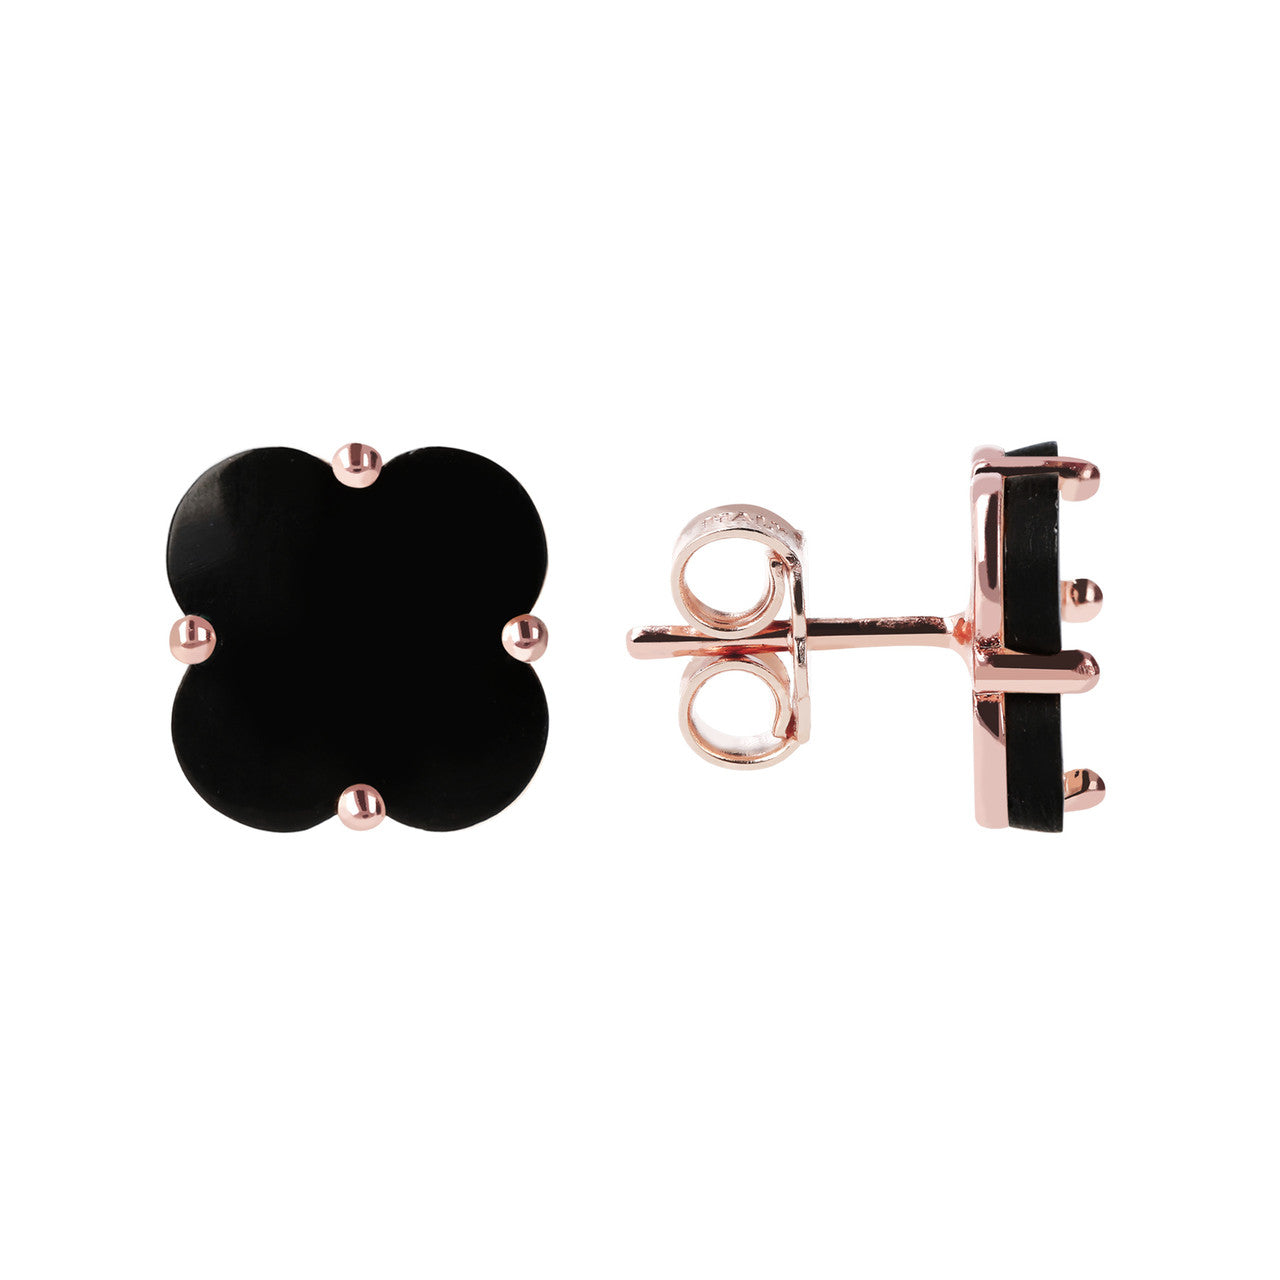 Clover Stud Earrings front and side